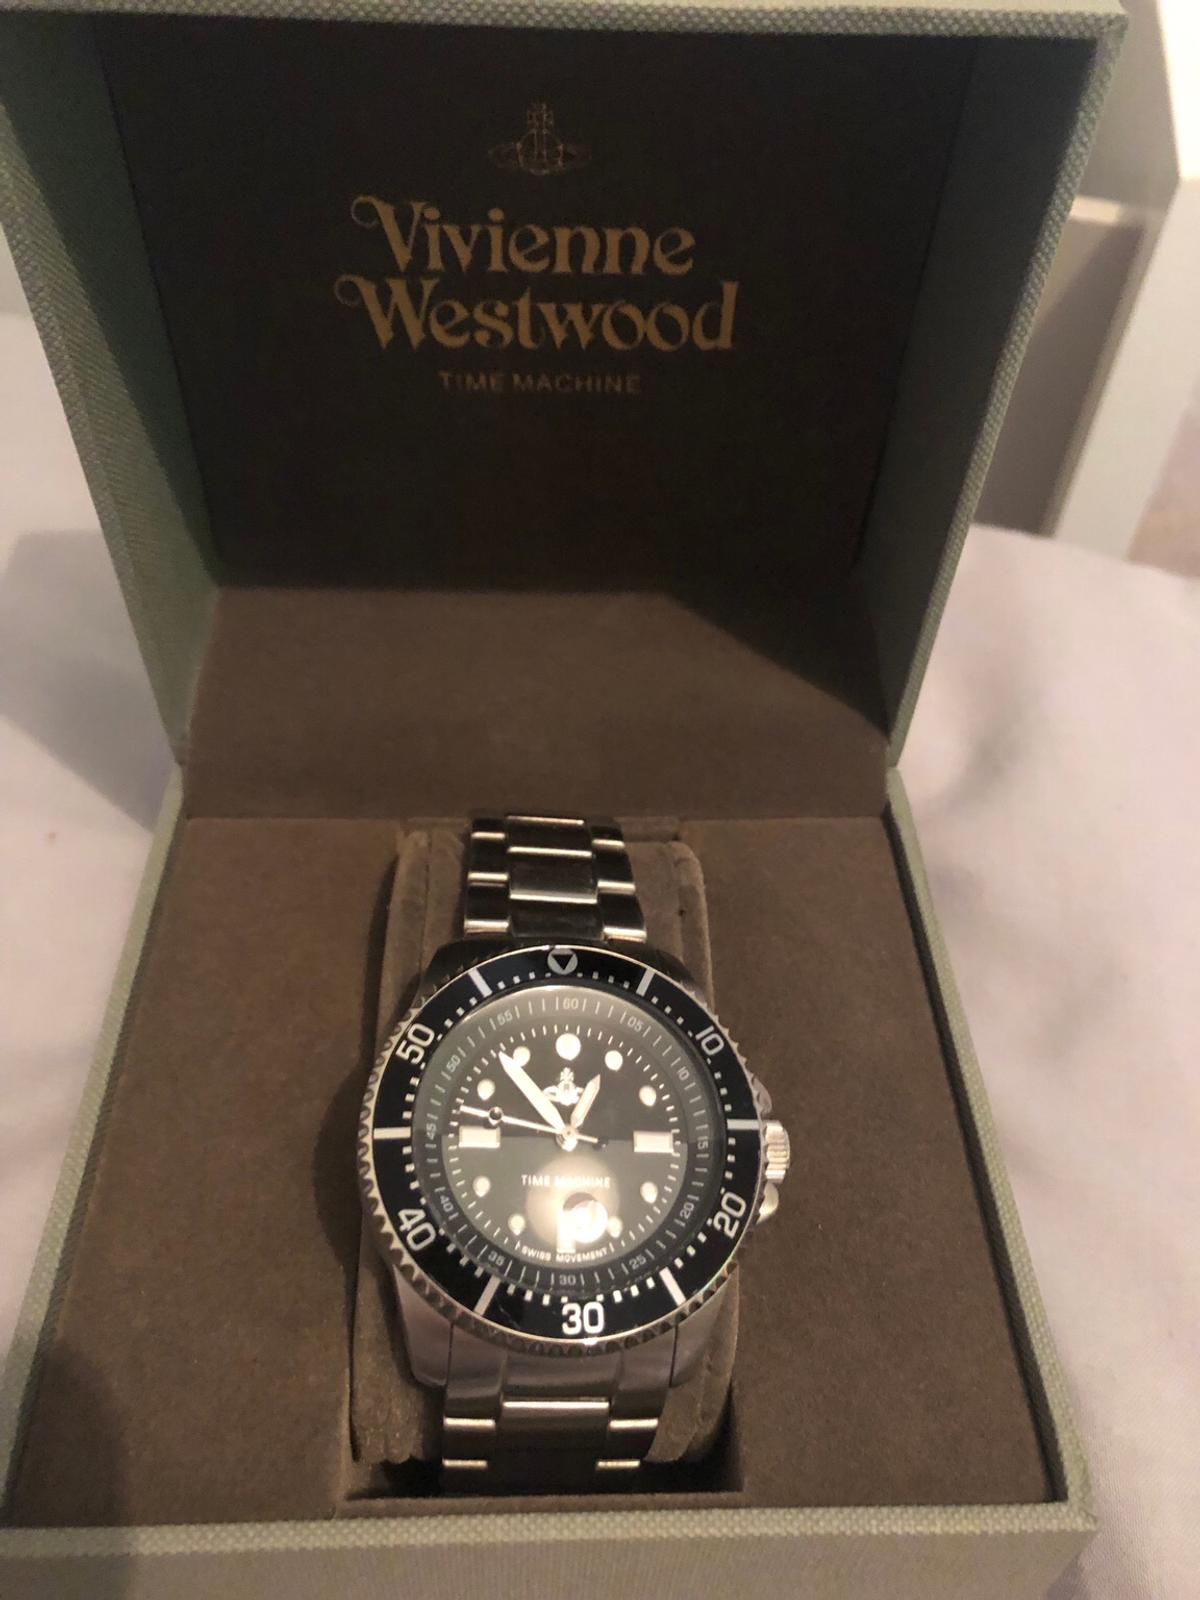 Selling a Vivienne westwood watch in amazing condition due to hardly being worn looking for £100